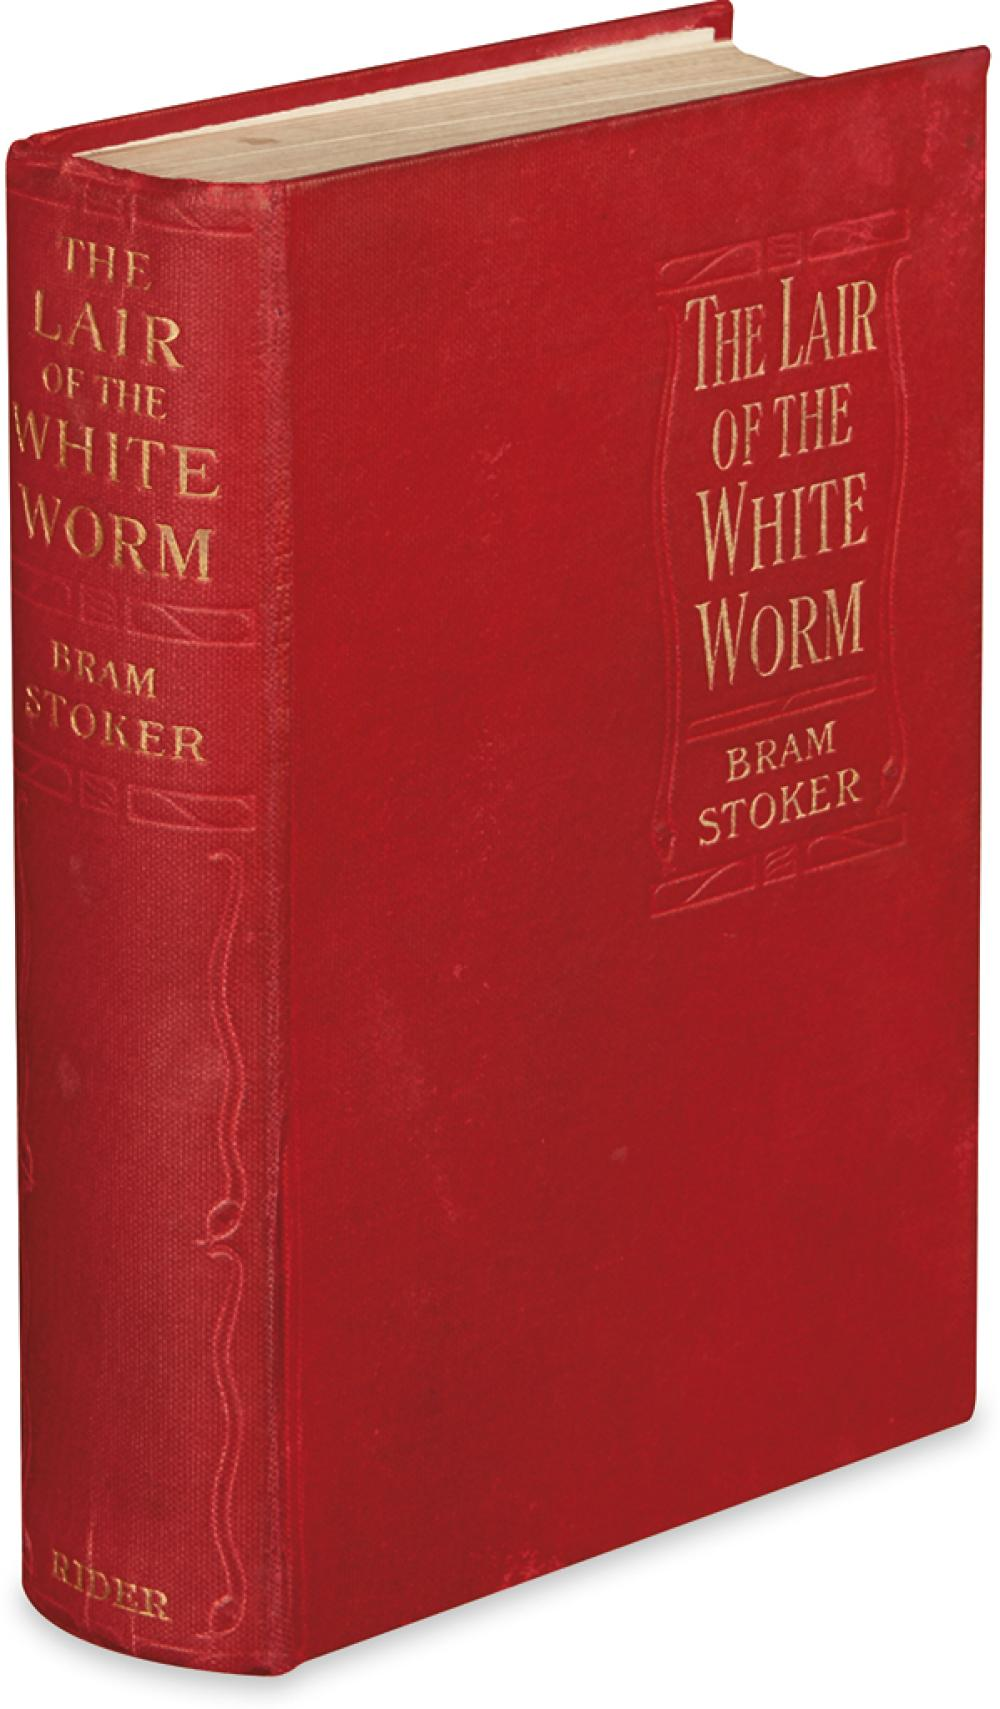 STOKER, BRAM. The Lair of the White Worm.